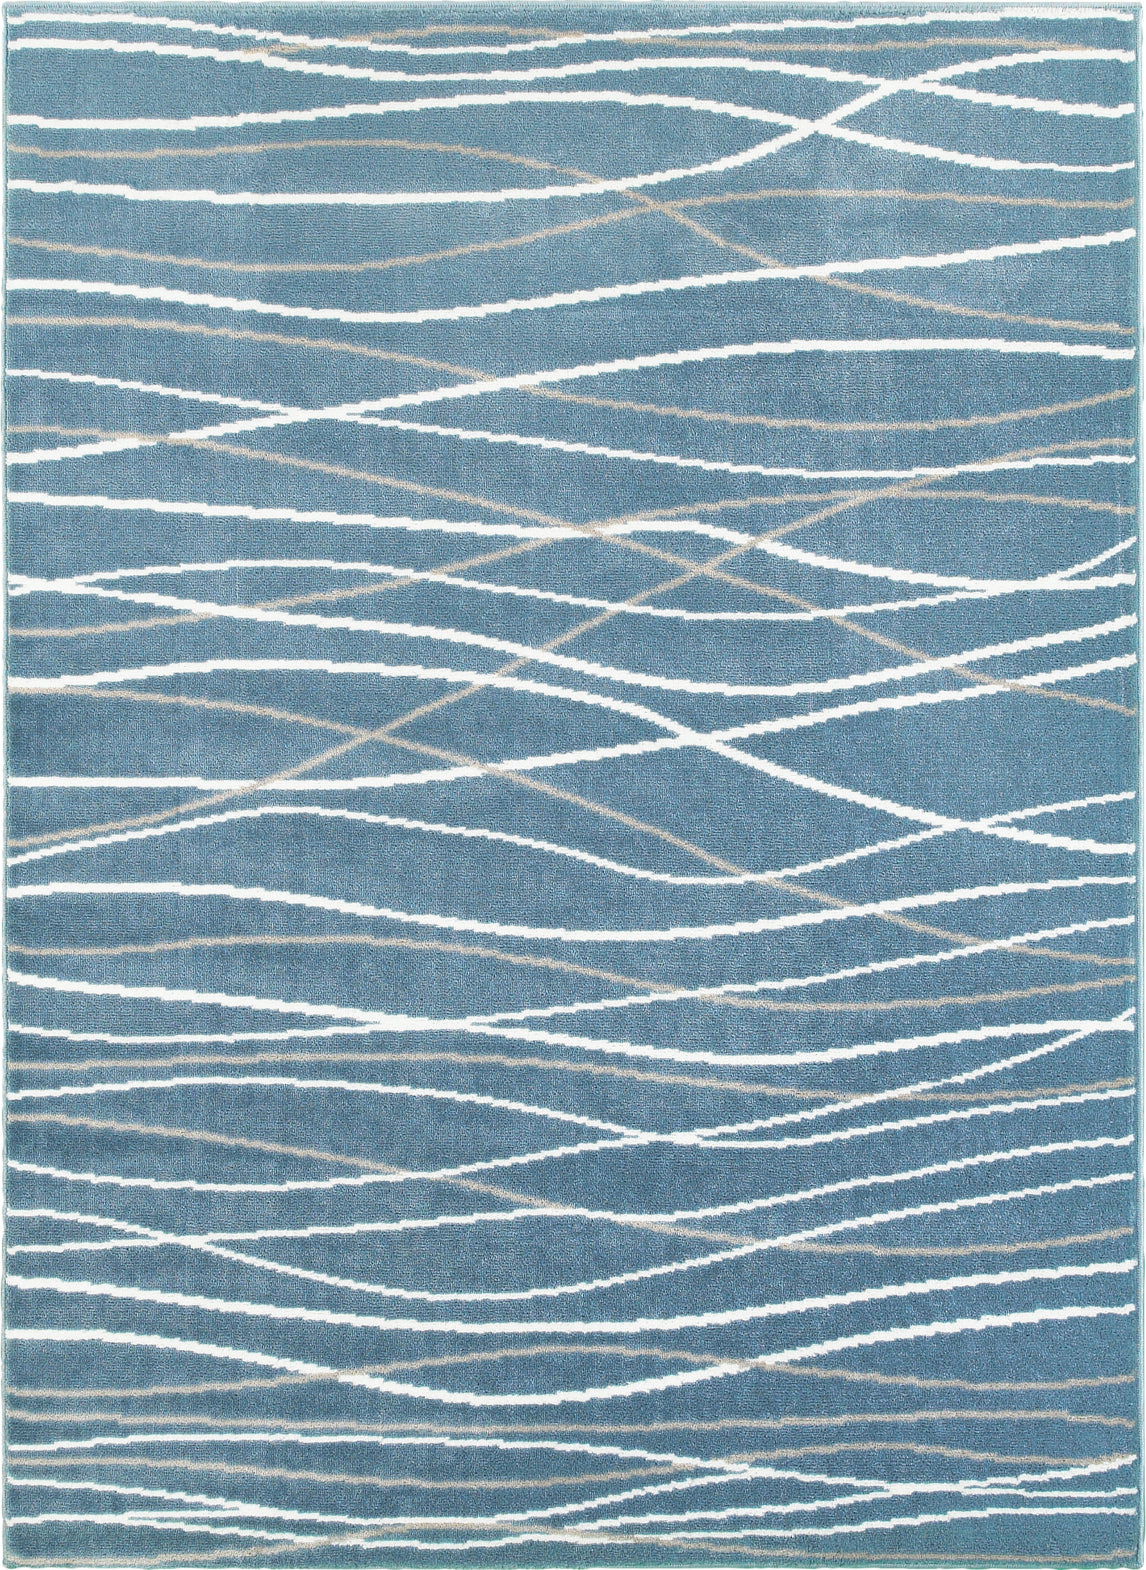 LR Resources Grace 81125 Blue Area Rug main image